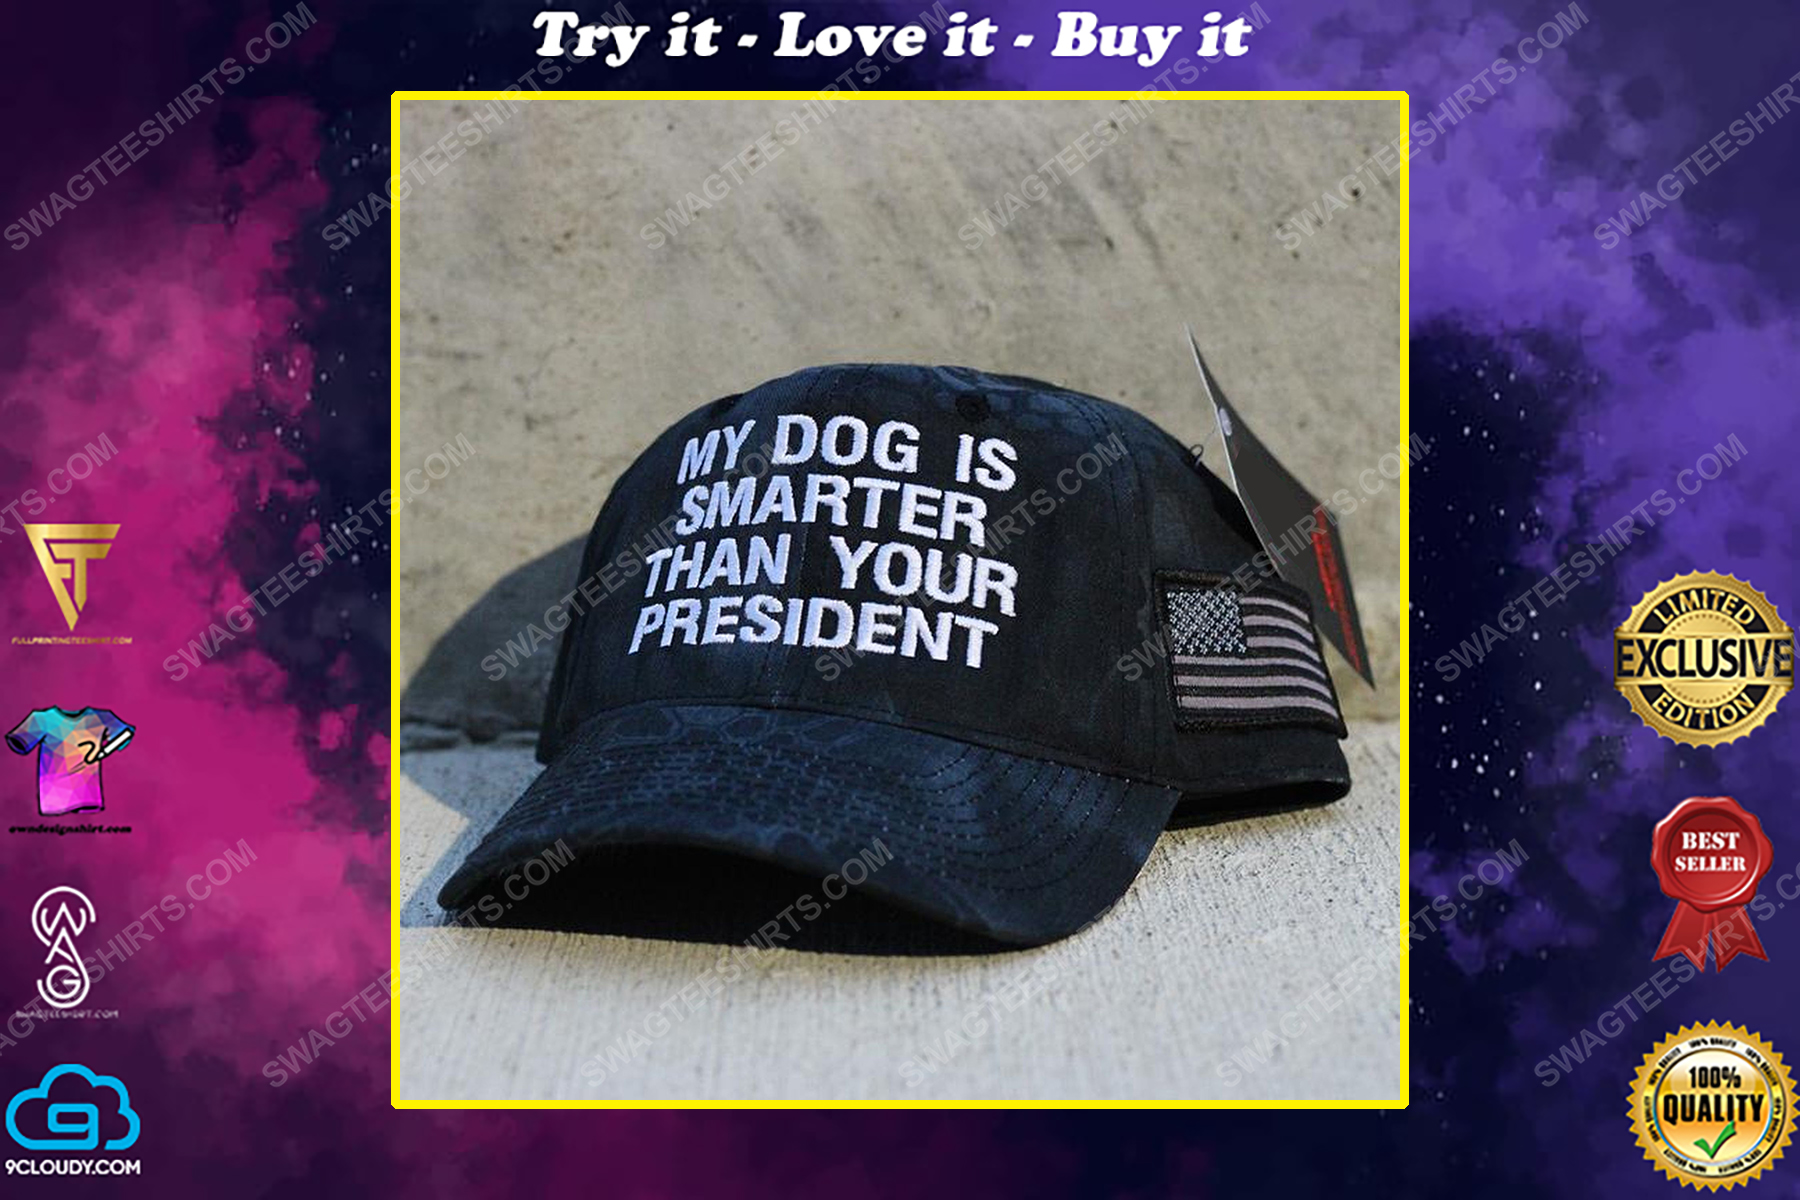 My dog is smarter than your president american flag full print classic hat